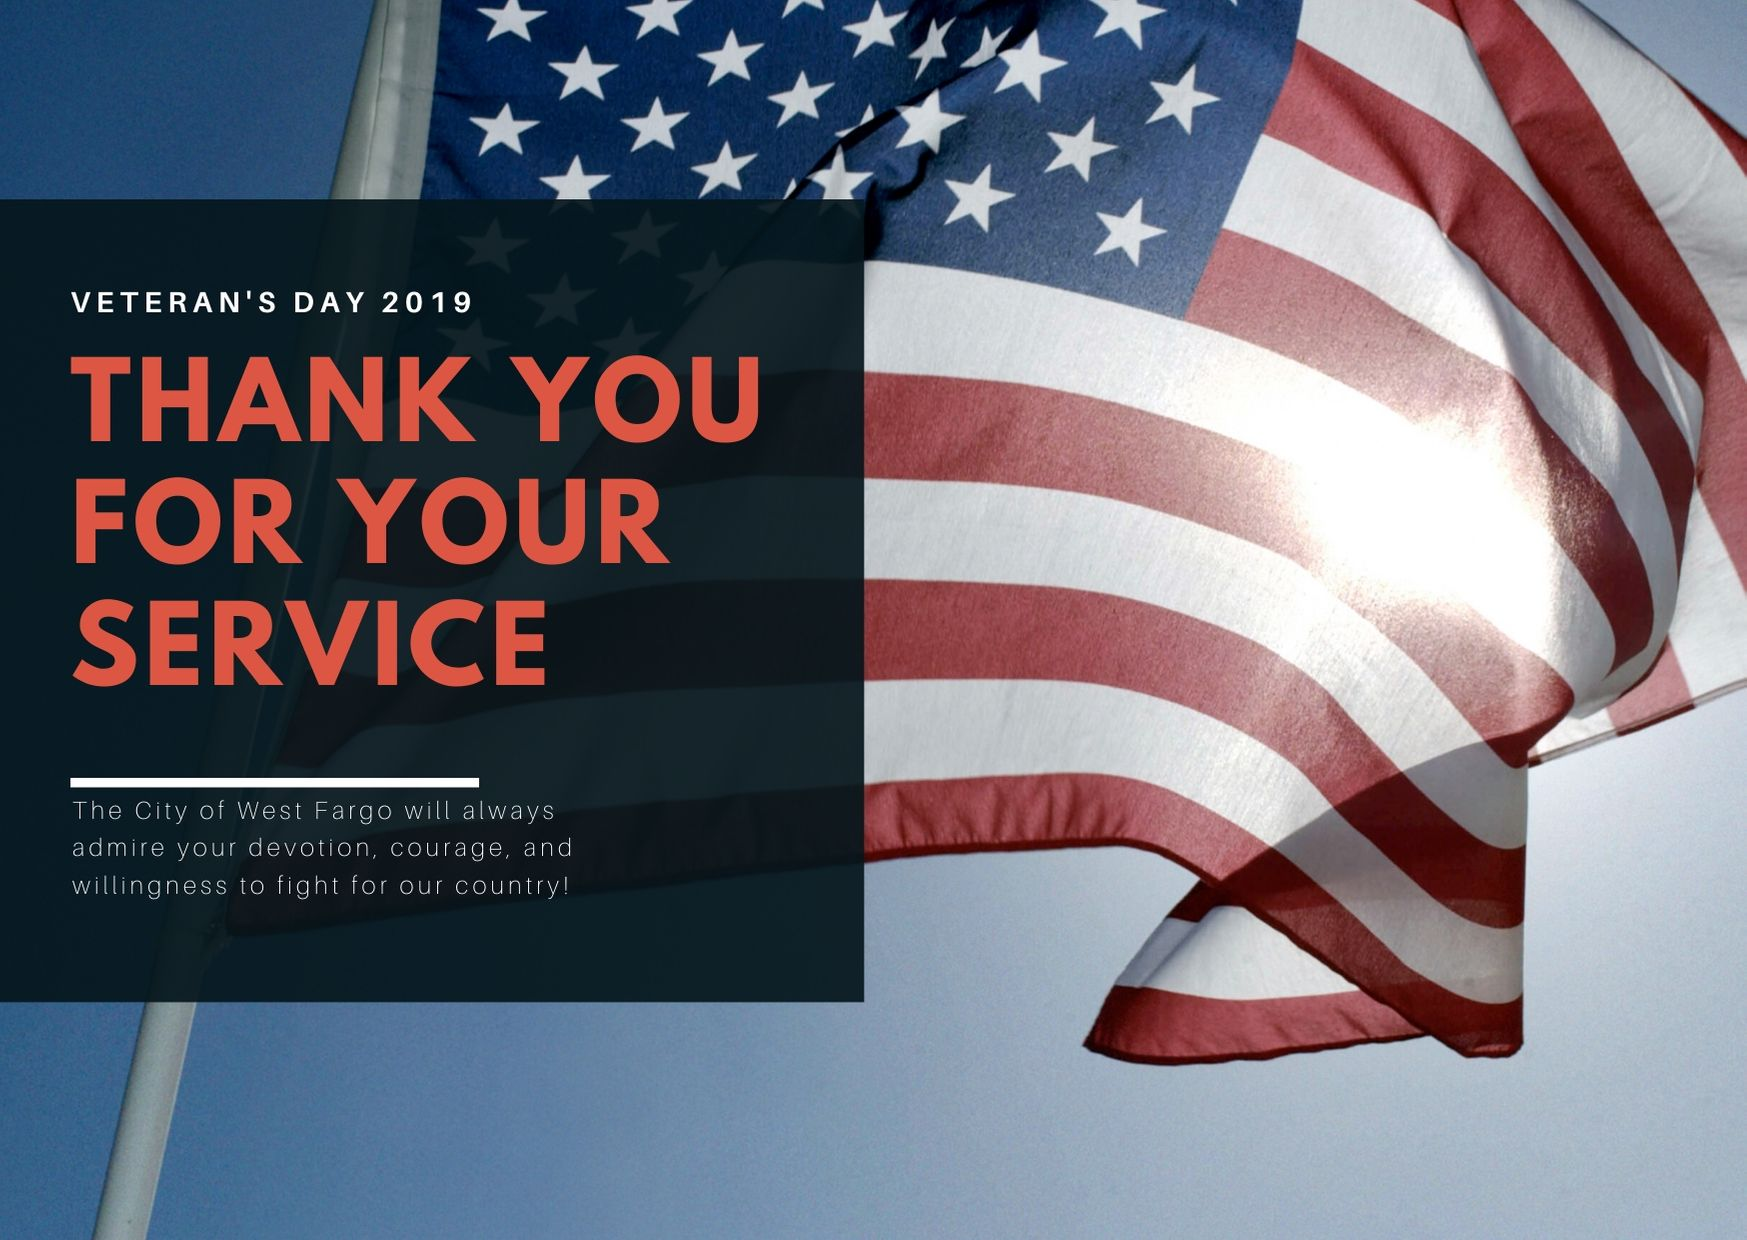 Veterans Day 2019 thank you message for veterans